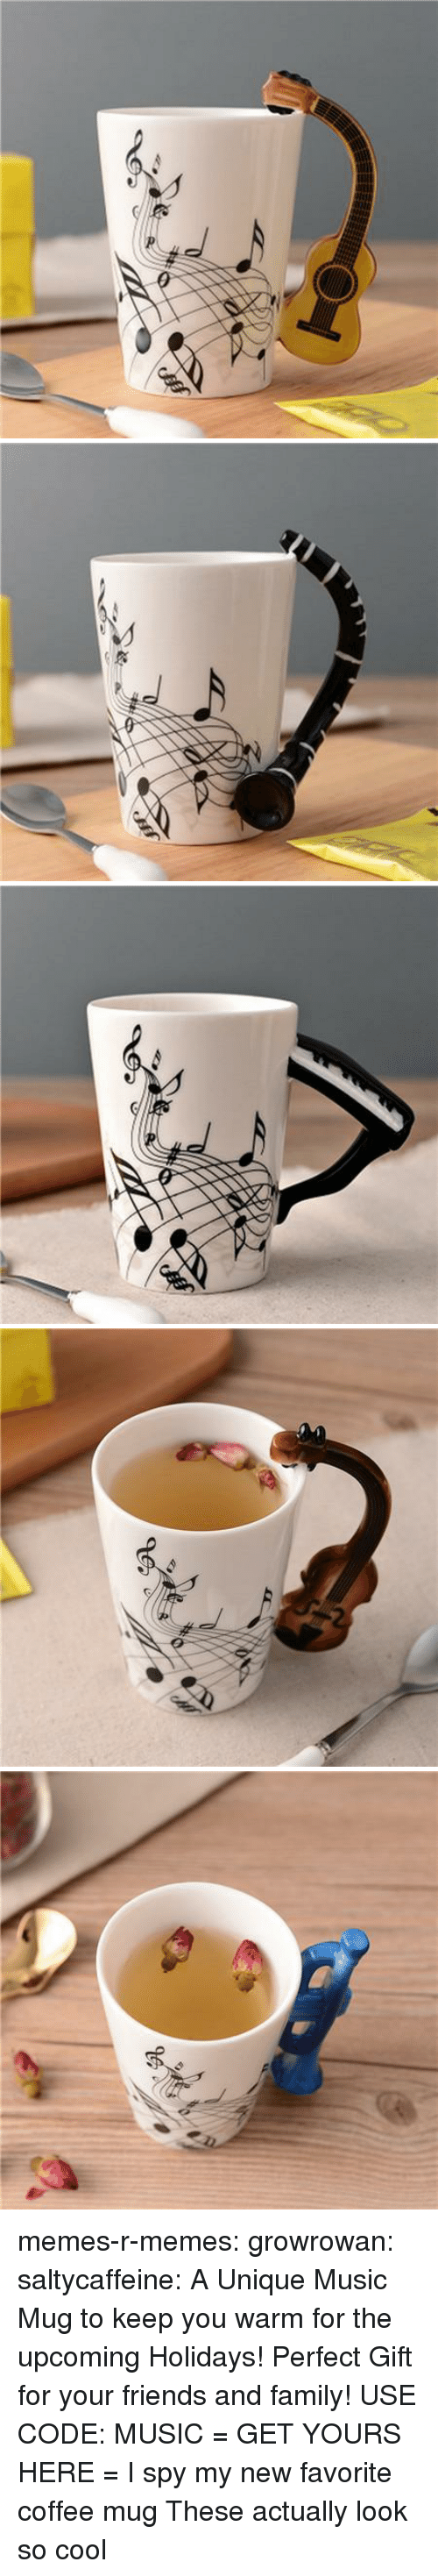 Family, Friends, and Memes: memes-r-memes:  growrowan:  saltycaffeine: A Unique Music Mug to keep you warm for the upcoming Holidays! Perfect Gift for your friends and family! USE CODE: MUSIC = GET YOURS HERE =   I spy my new favorite coffee mug  These actually look so cool